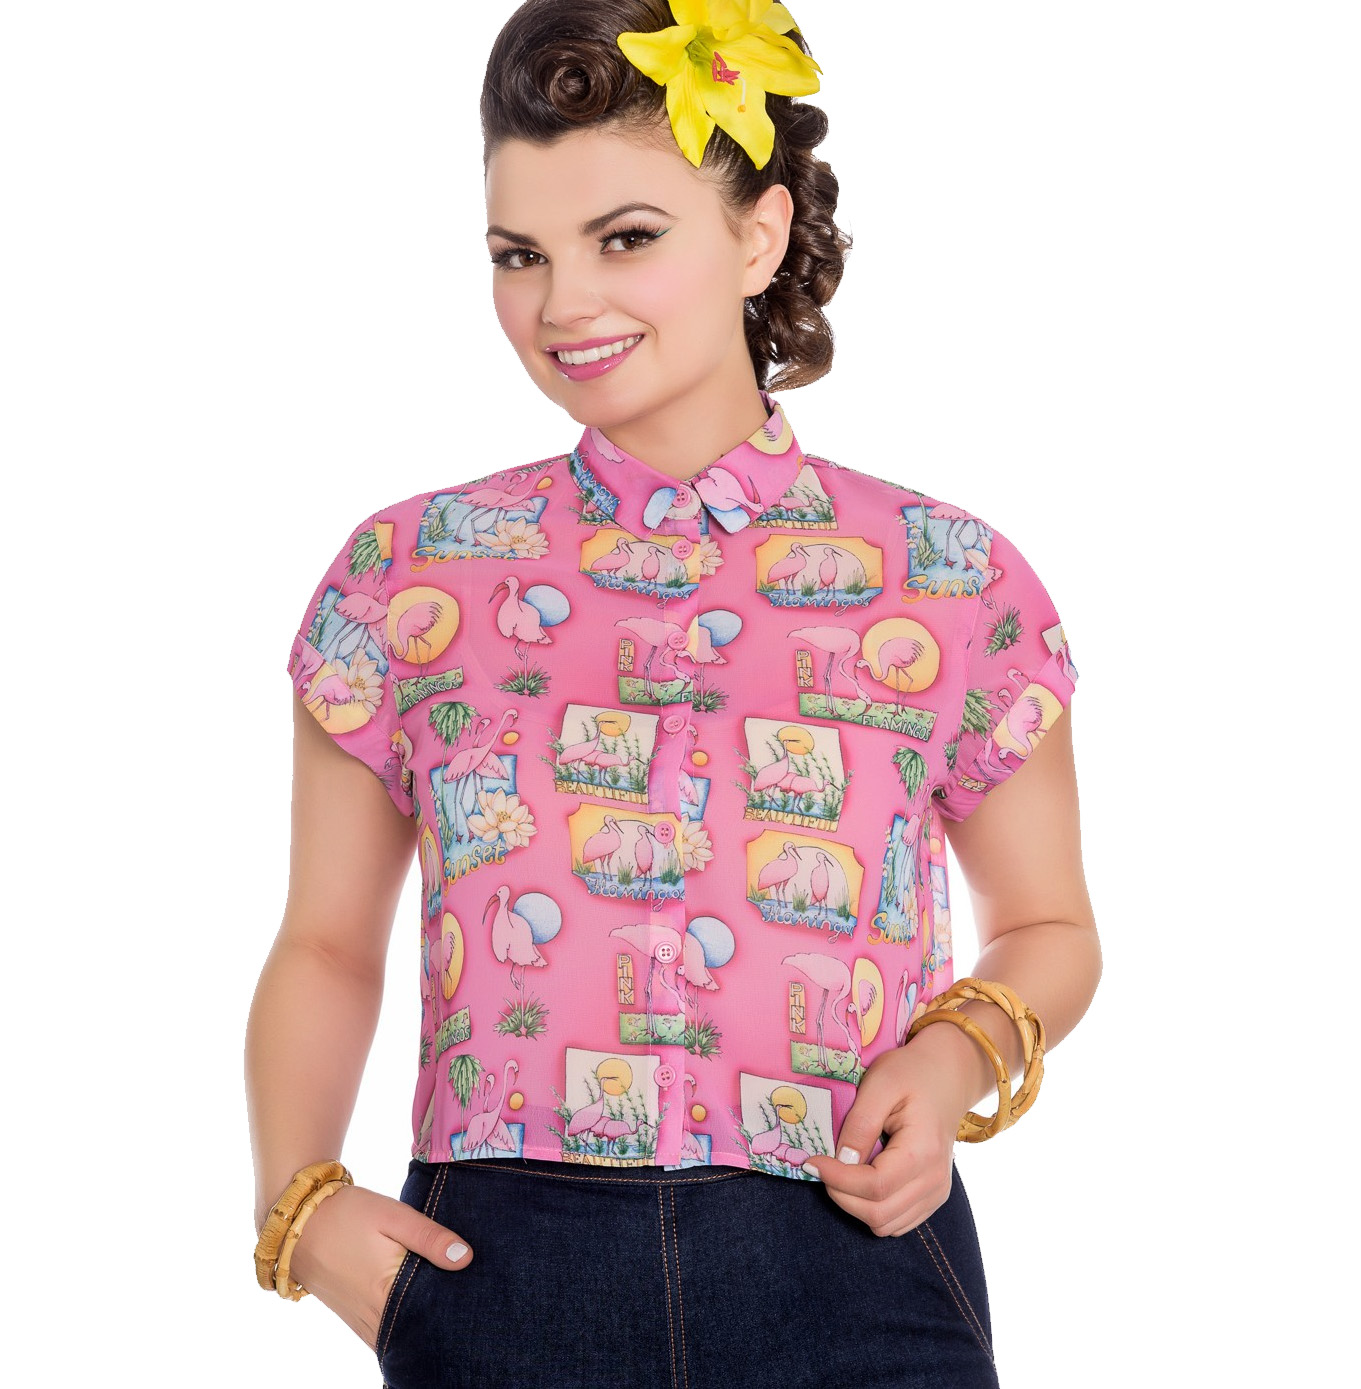 thumbnail 34 - Hell Bunny 50s Retro Top Pink Flamingo MAXINE Cropped Blouse Shirt All Sizes